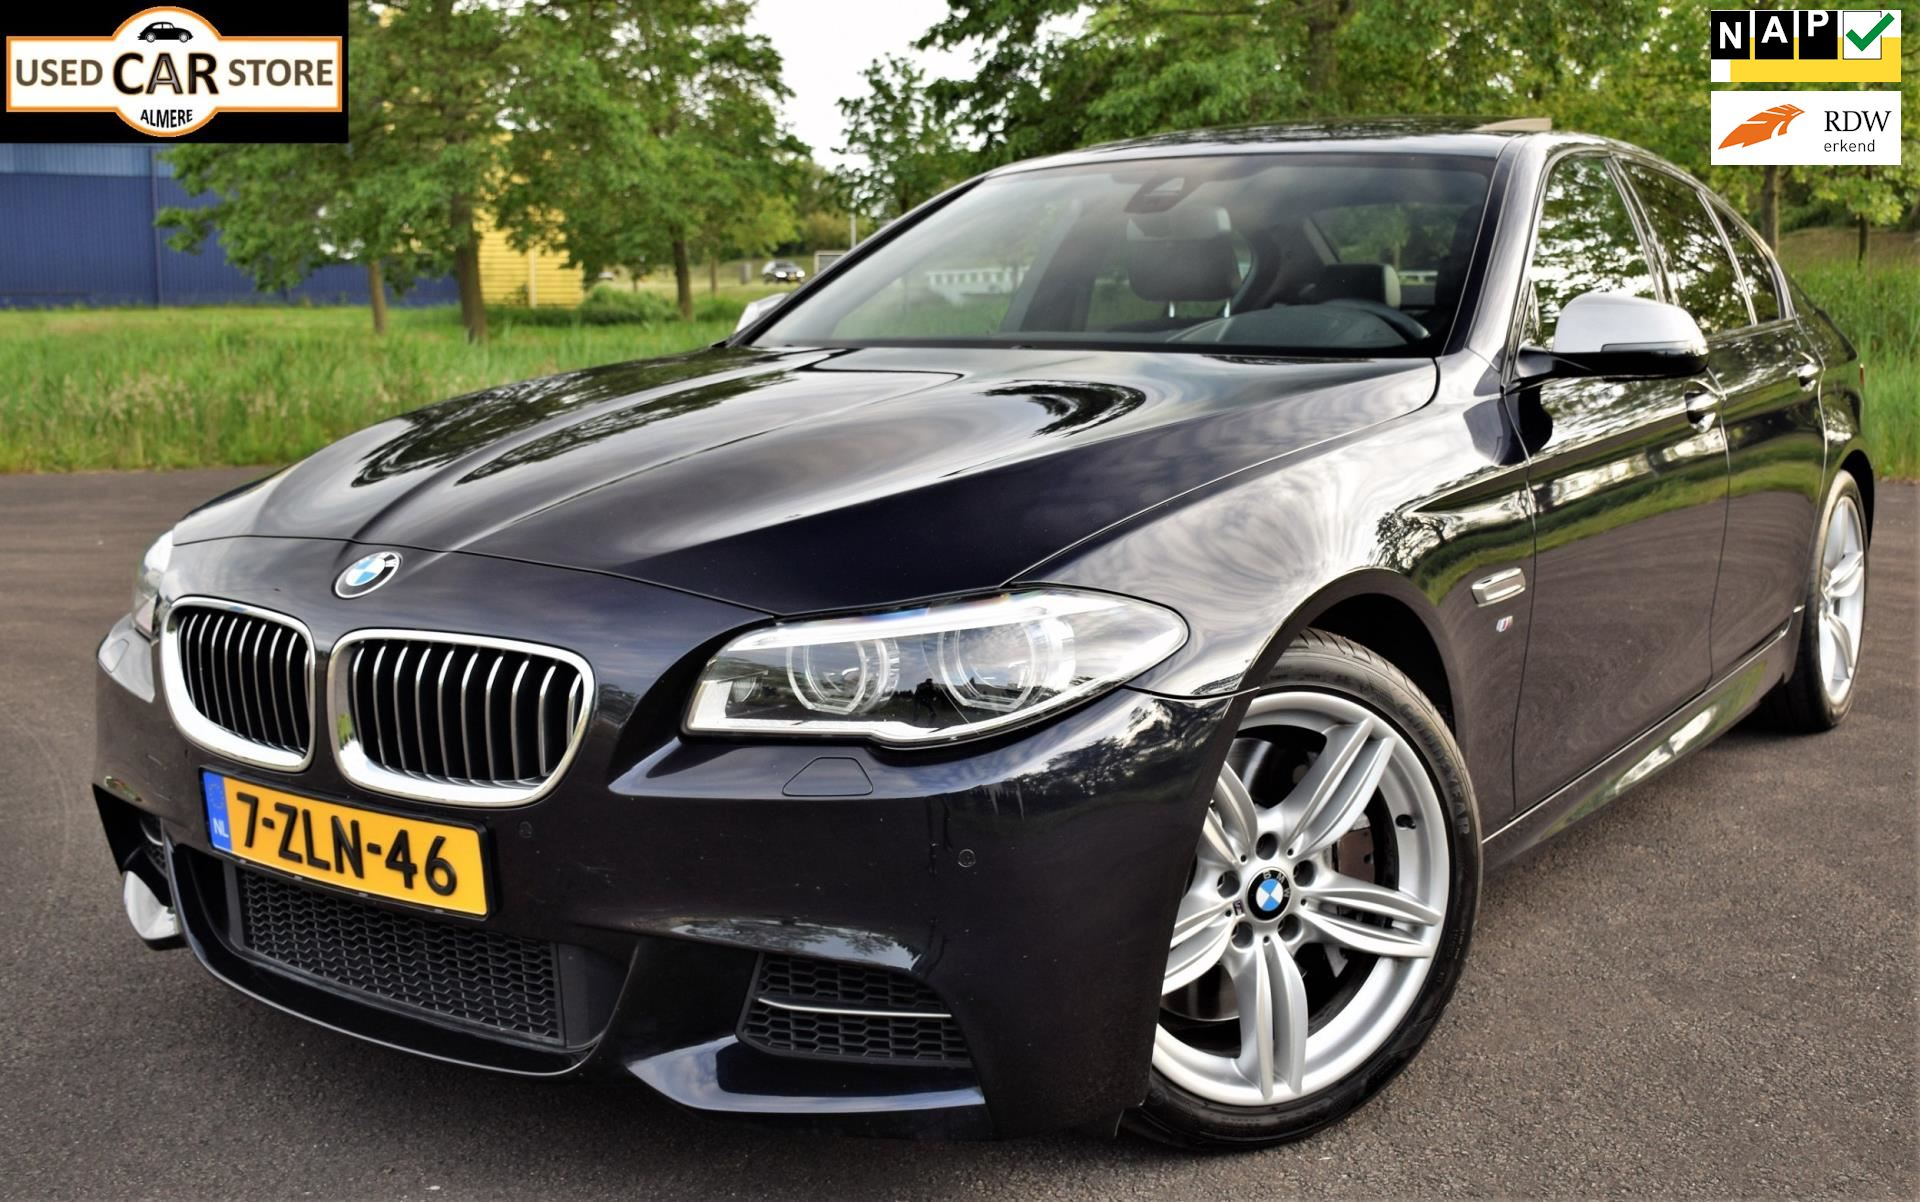 BMW 5-serie occasion - Used Car Store Almere